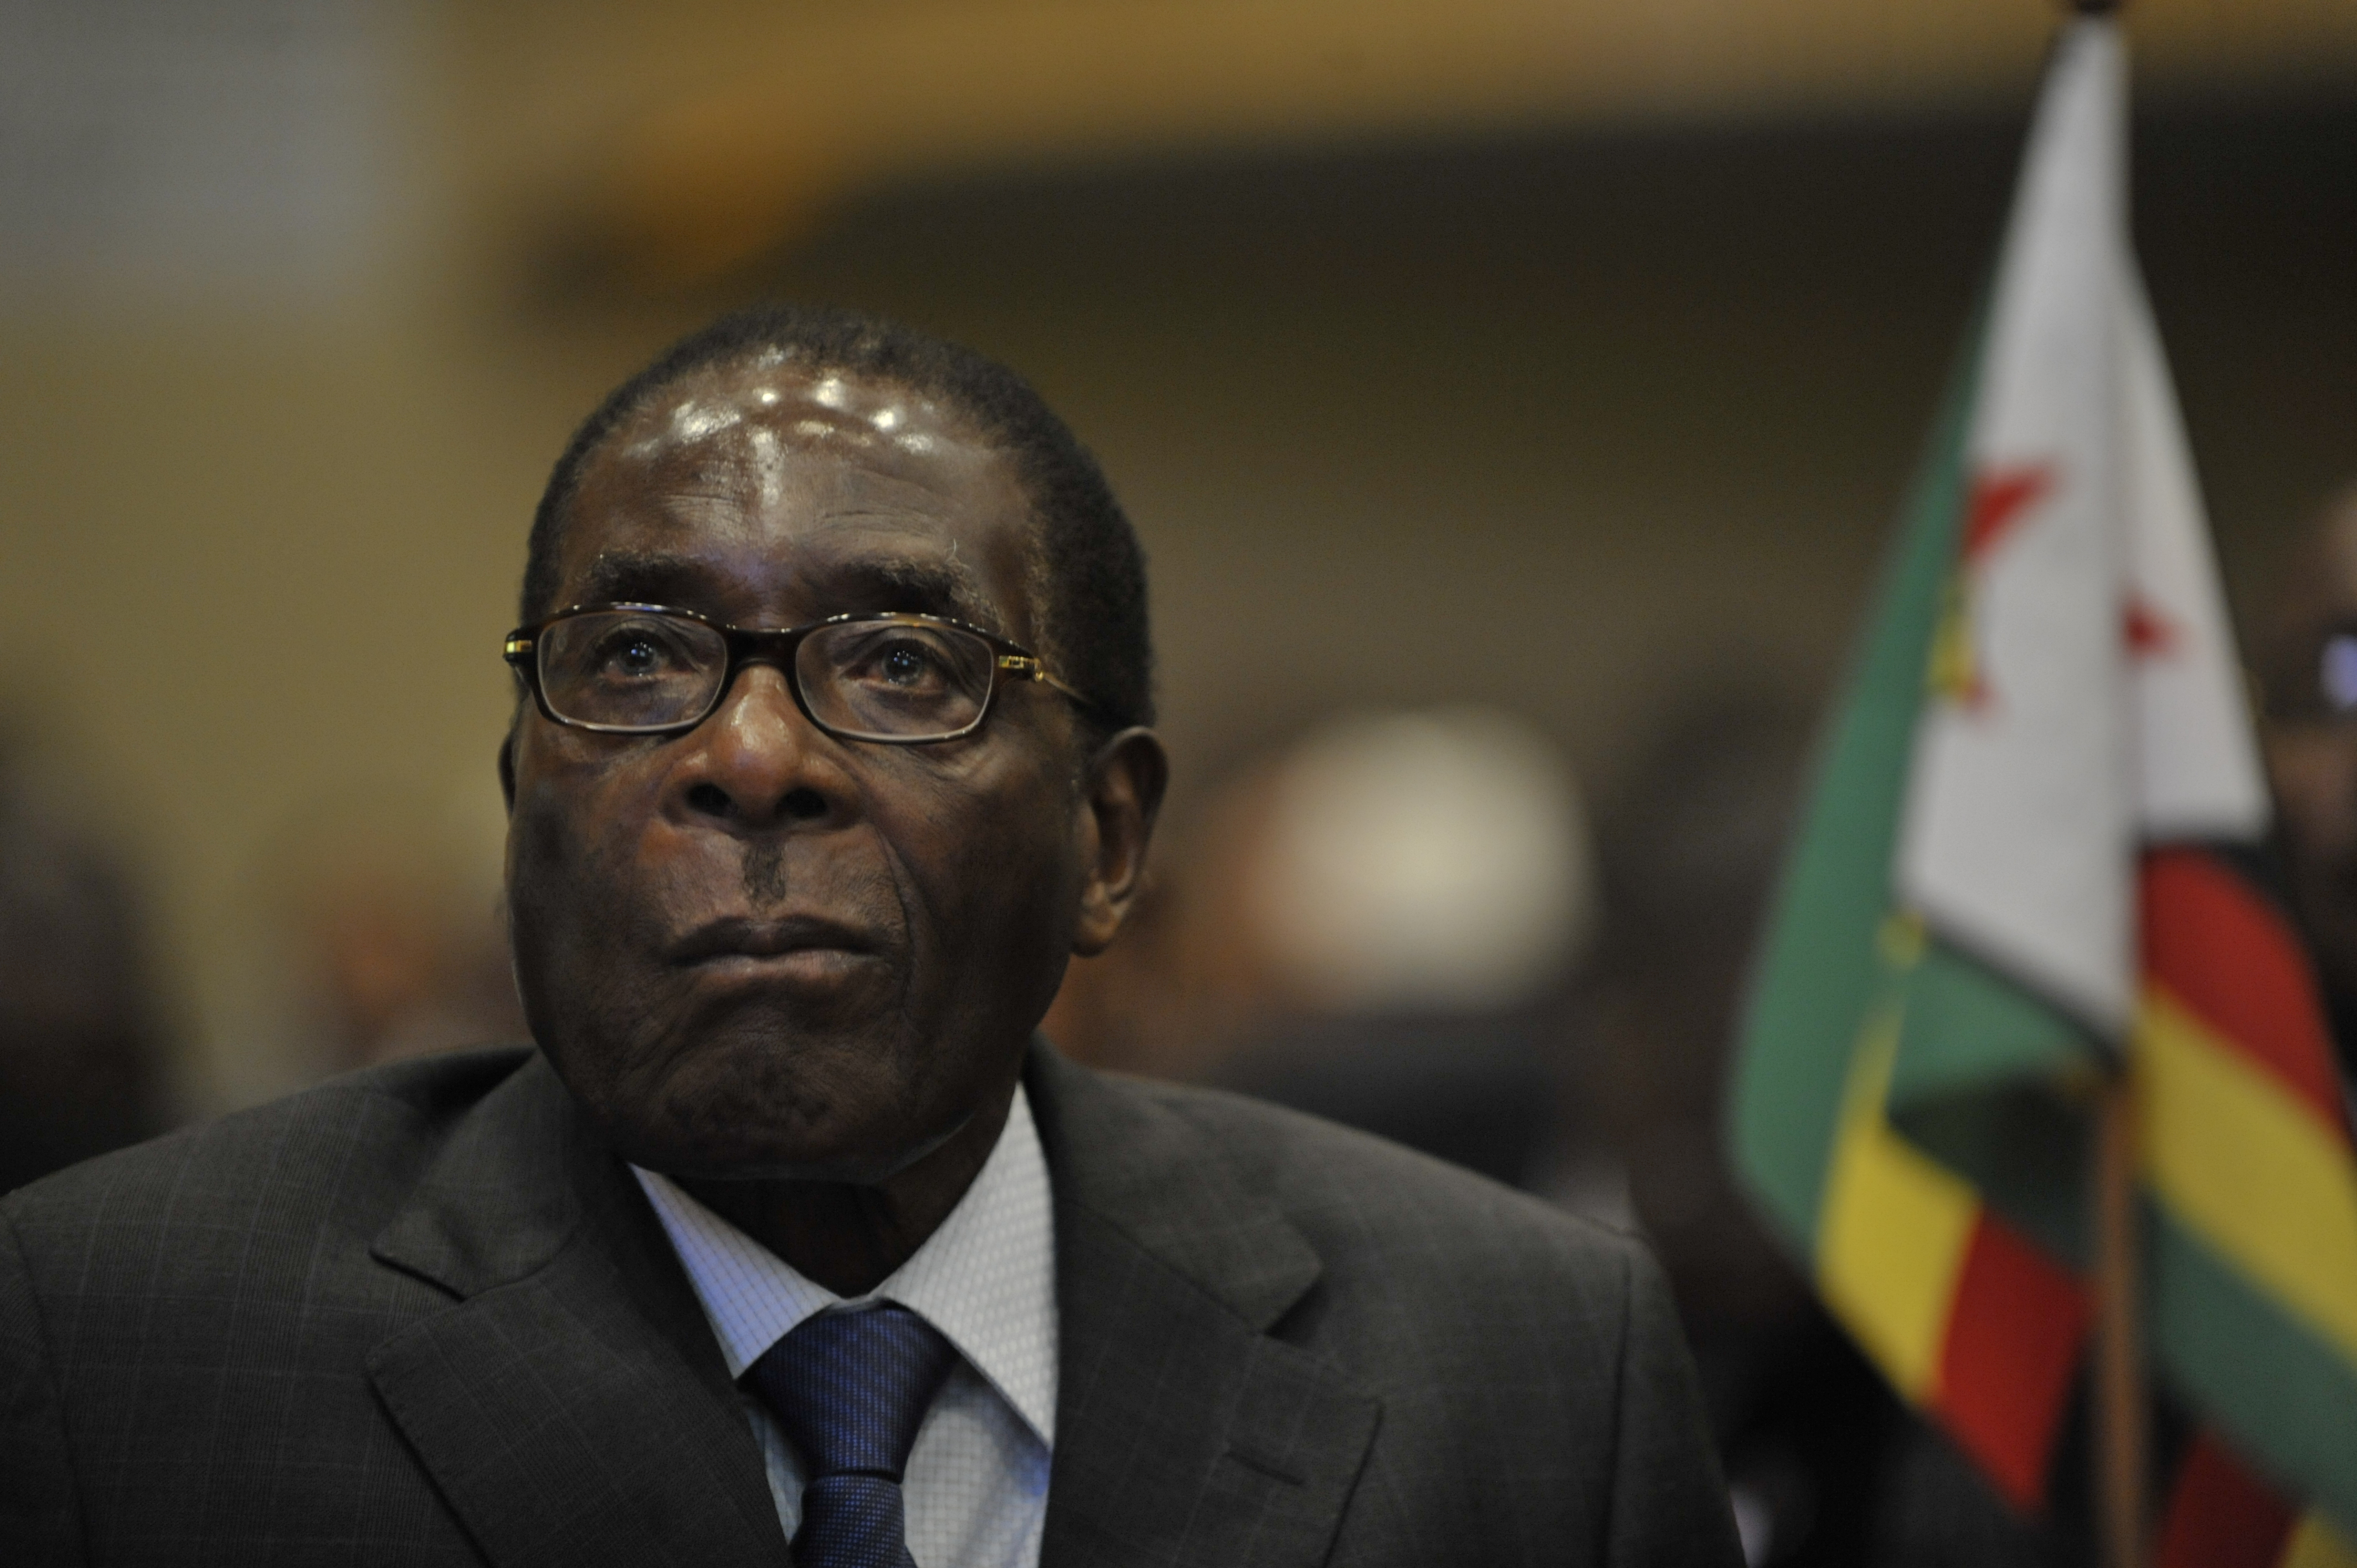 Robert Mugabe Wikipedia >> Nine things you might not know about Robert Mugabe - The Daily Vox